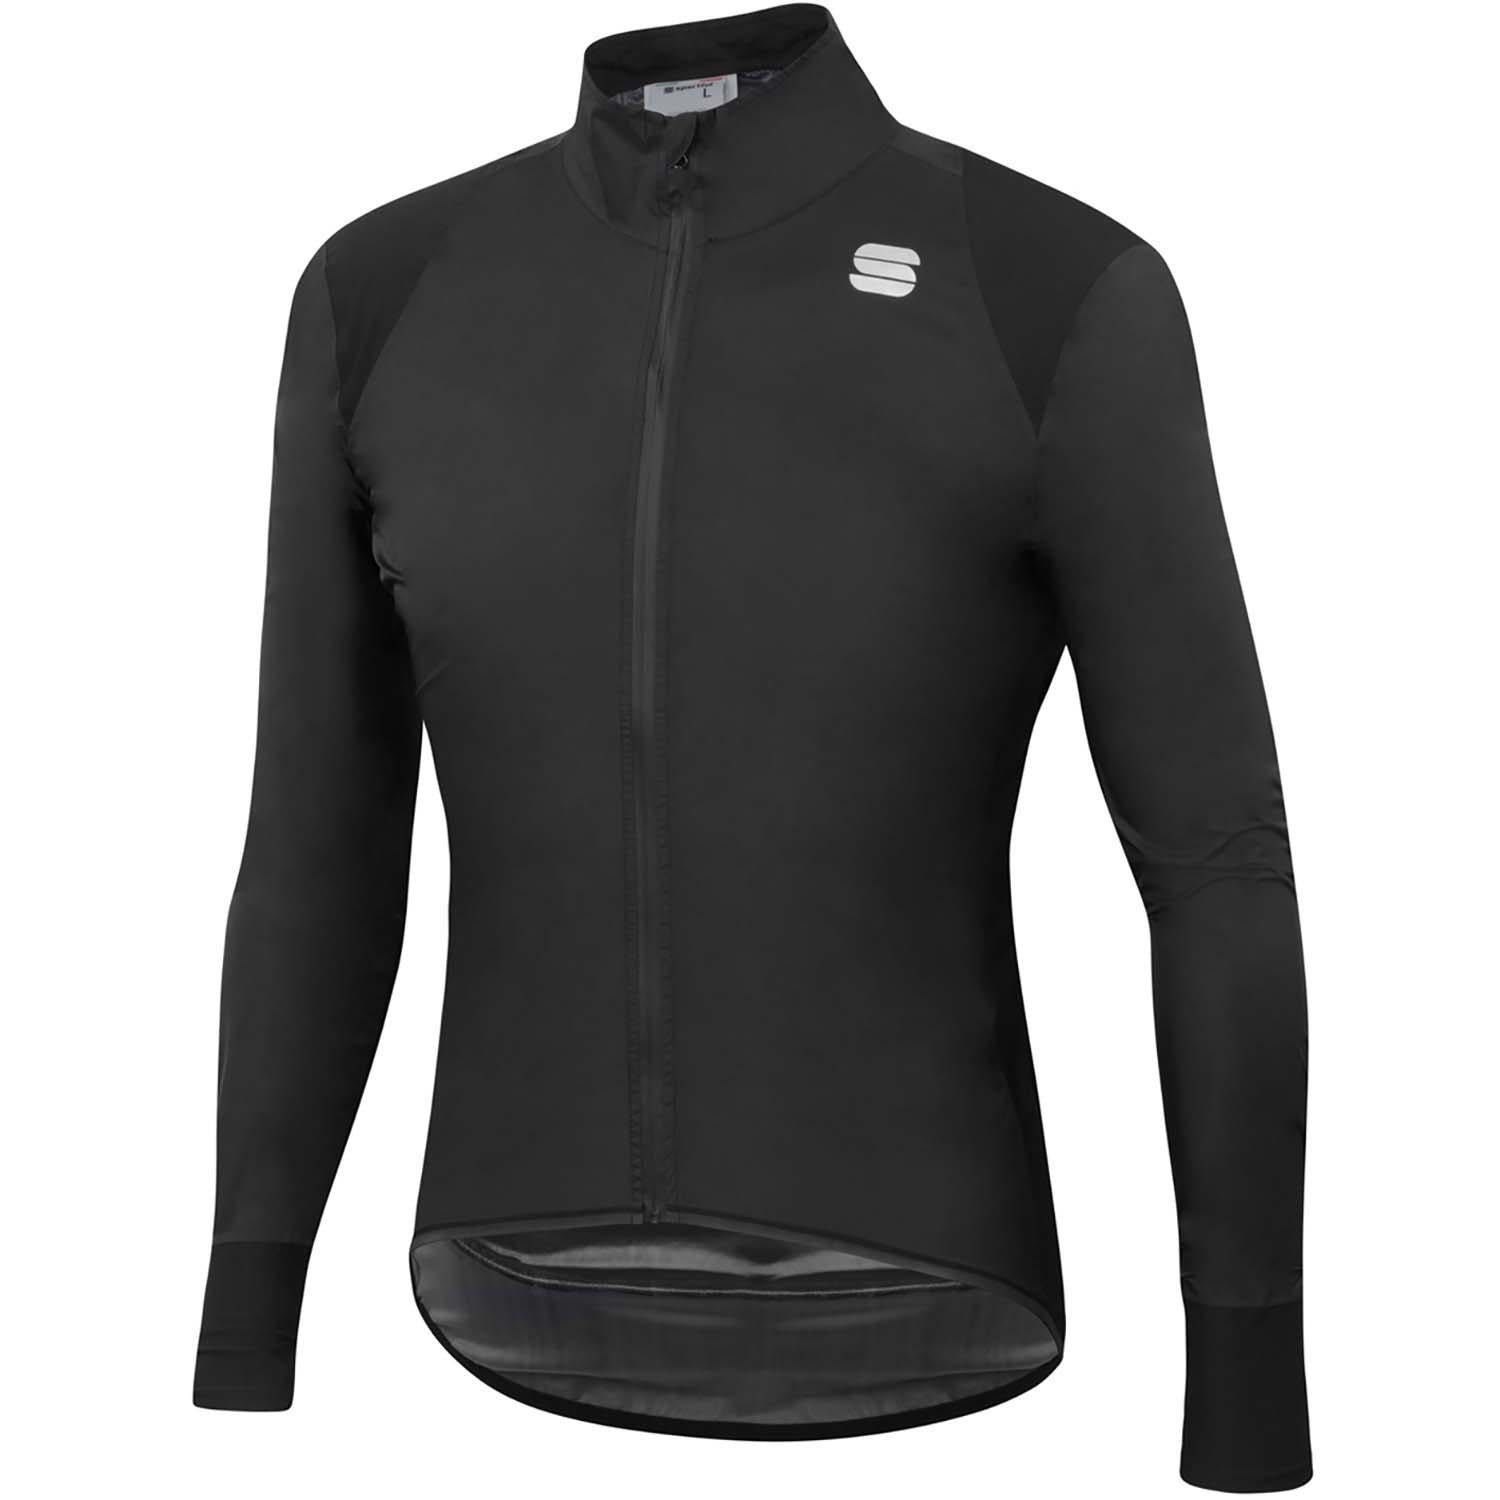 Sportful-Sportful Hot Pack NoRain Jacket-Black-S-SF200250022-saddleback-elite-performance-cycling